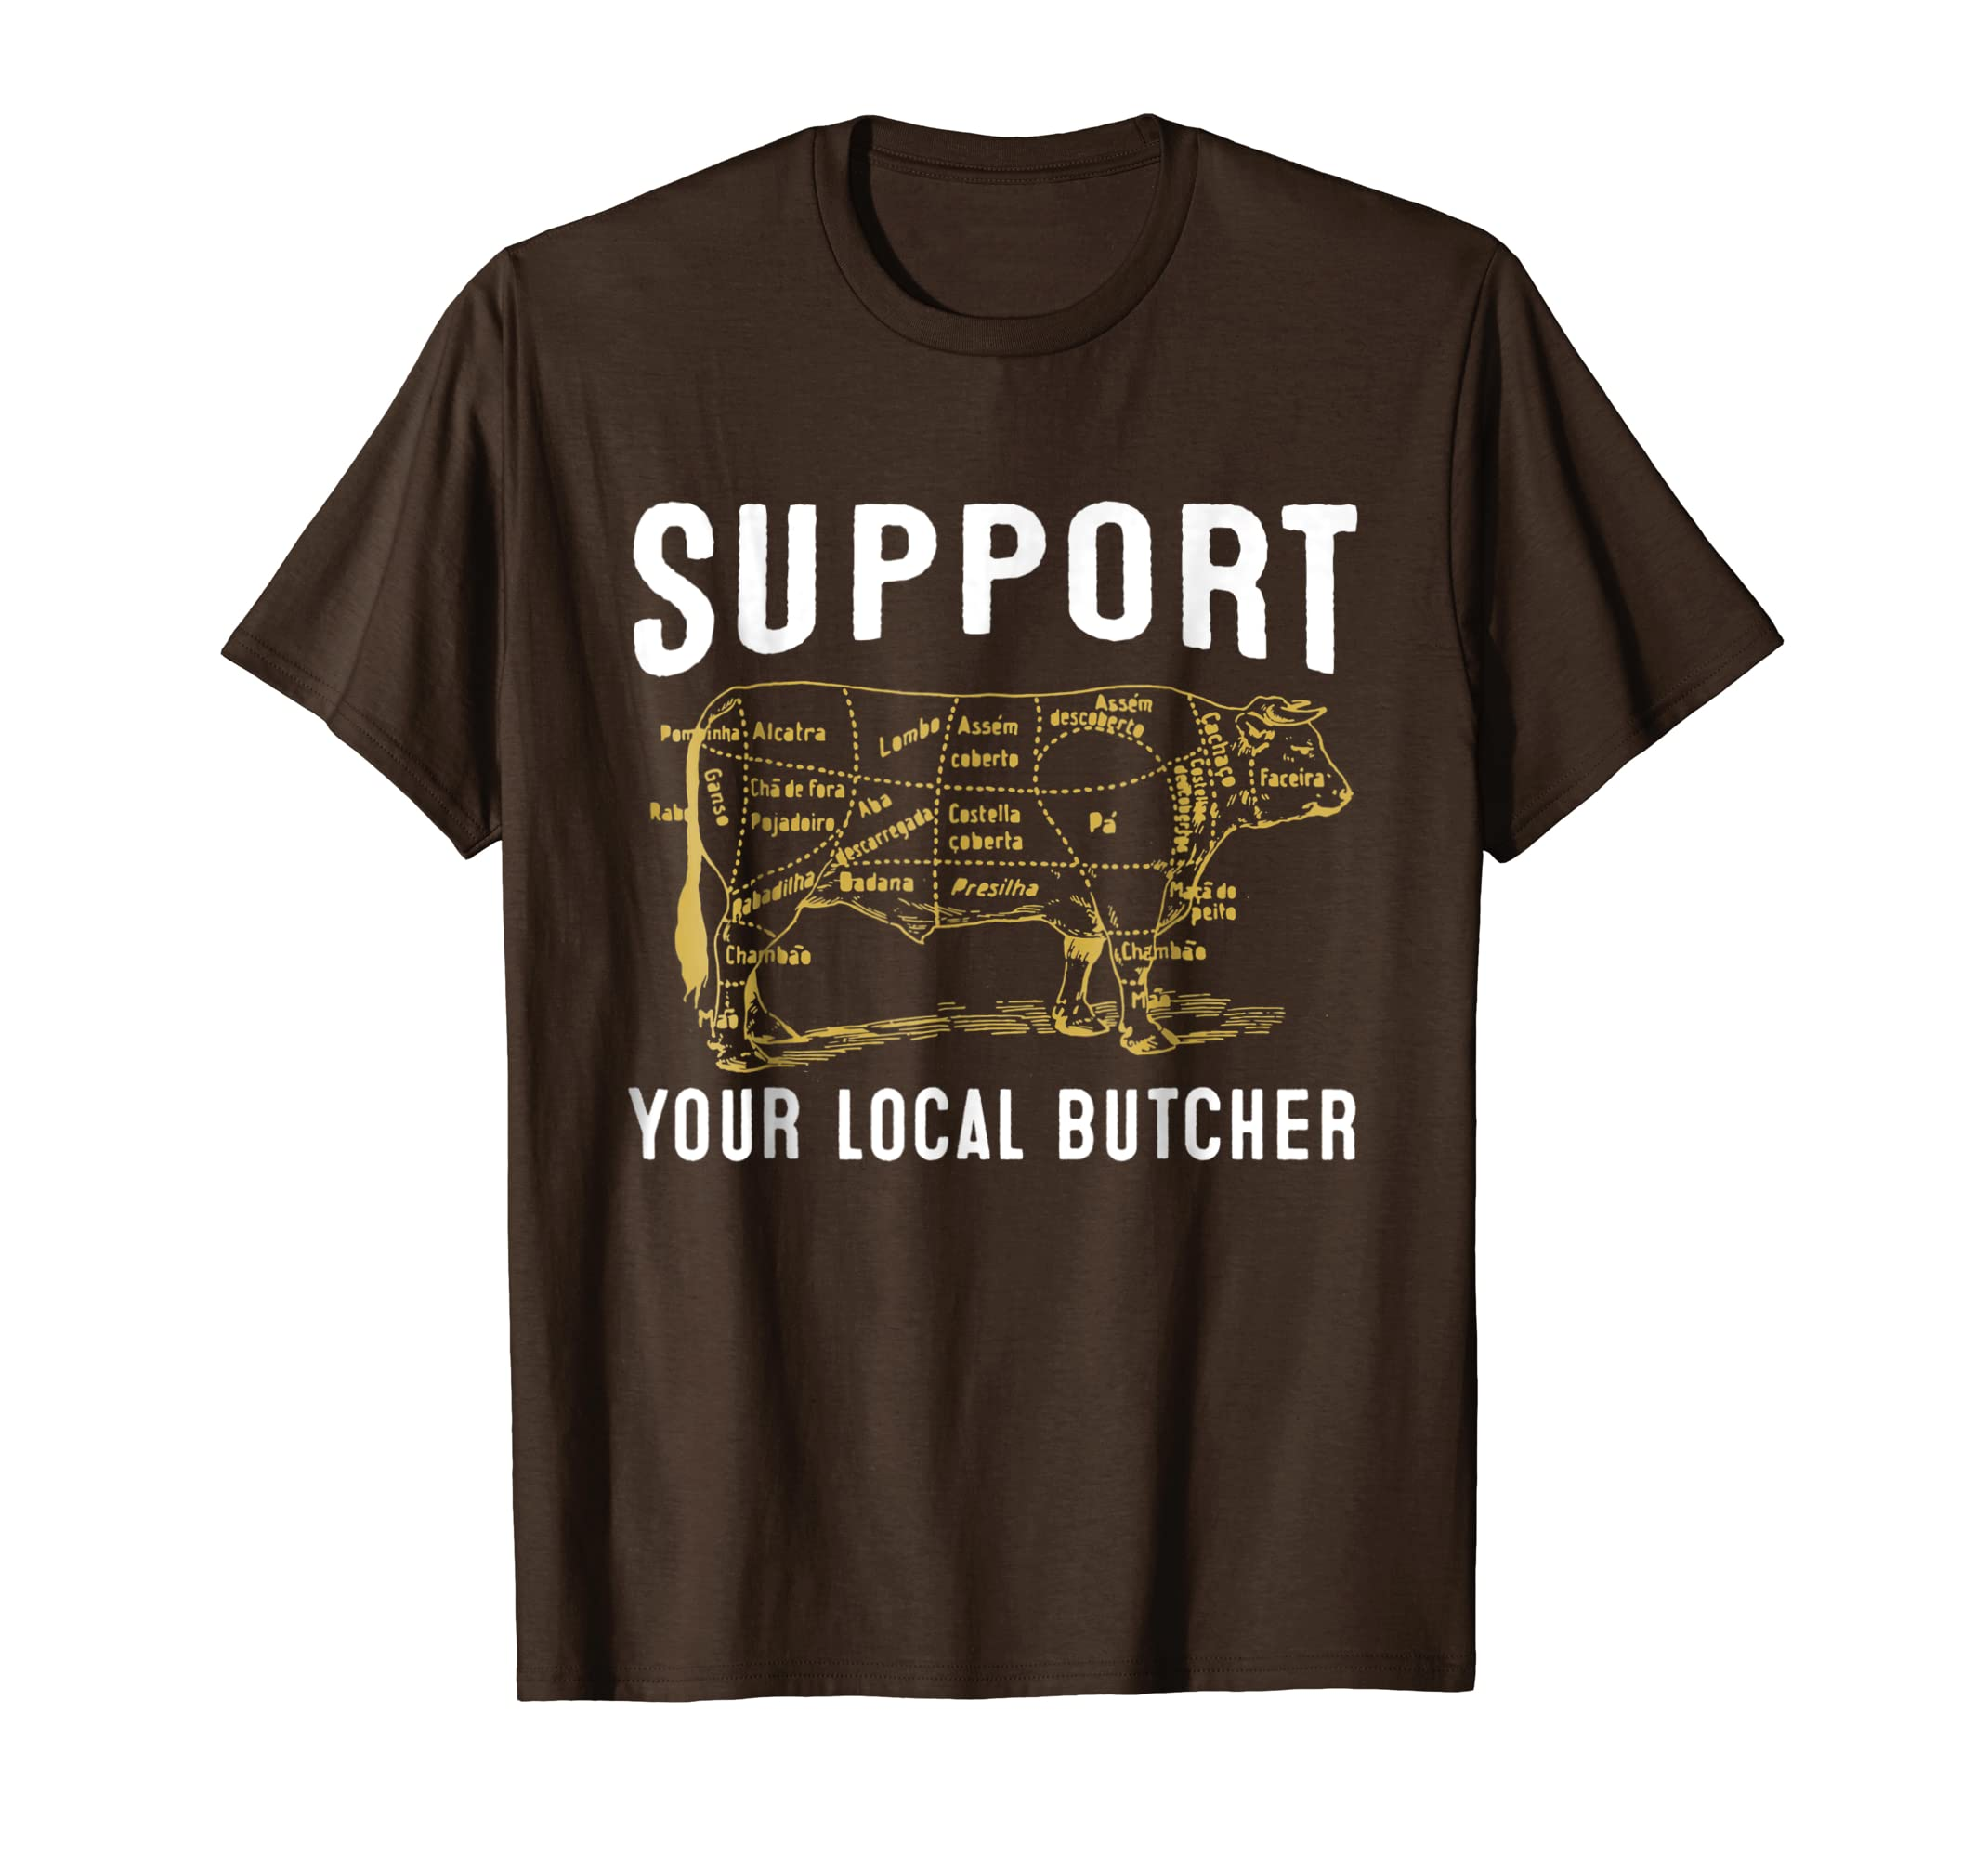 Support Your Local Butcher Tshirt   Cow-azvn